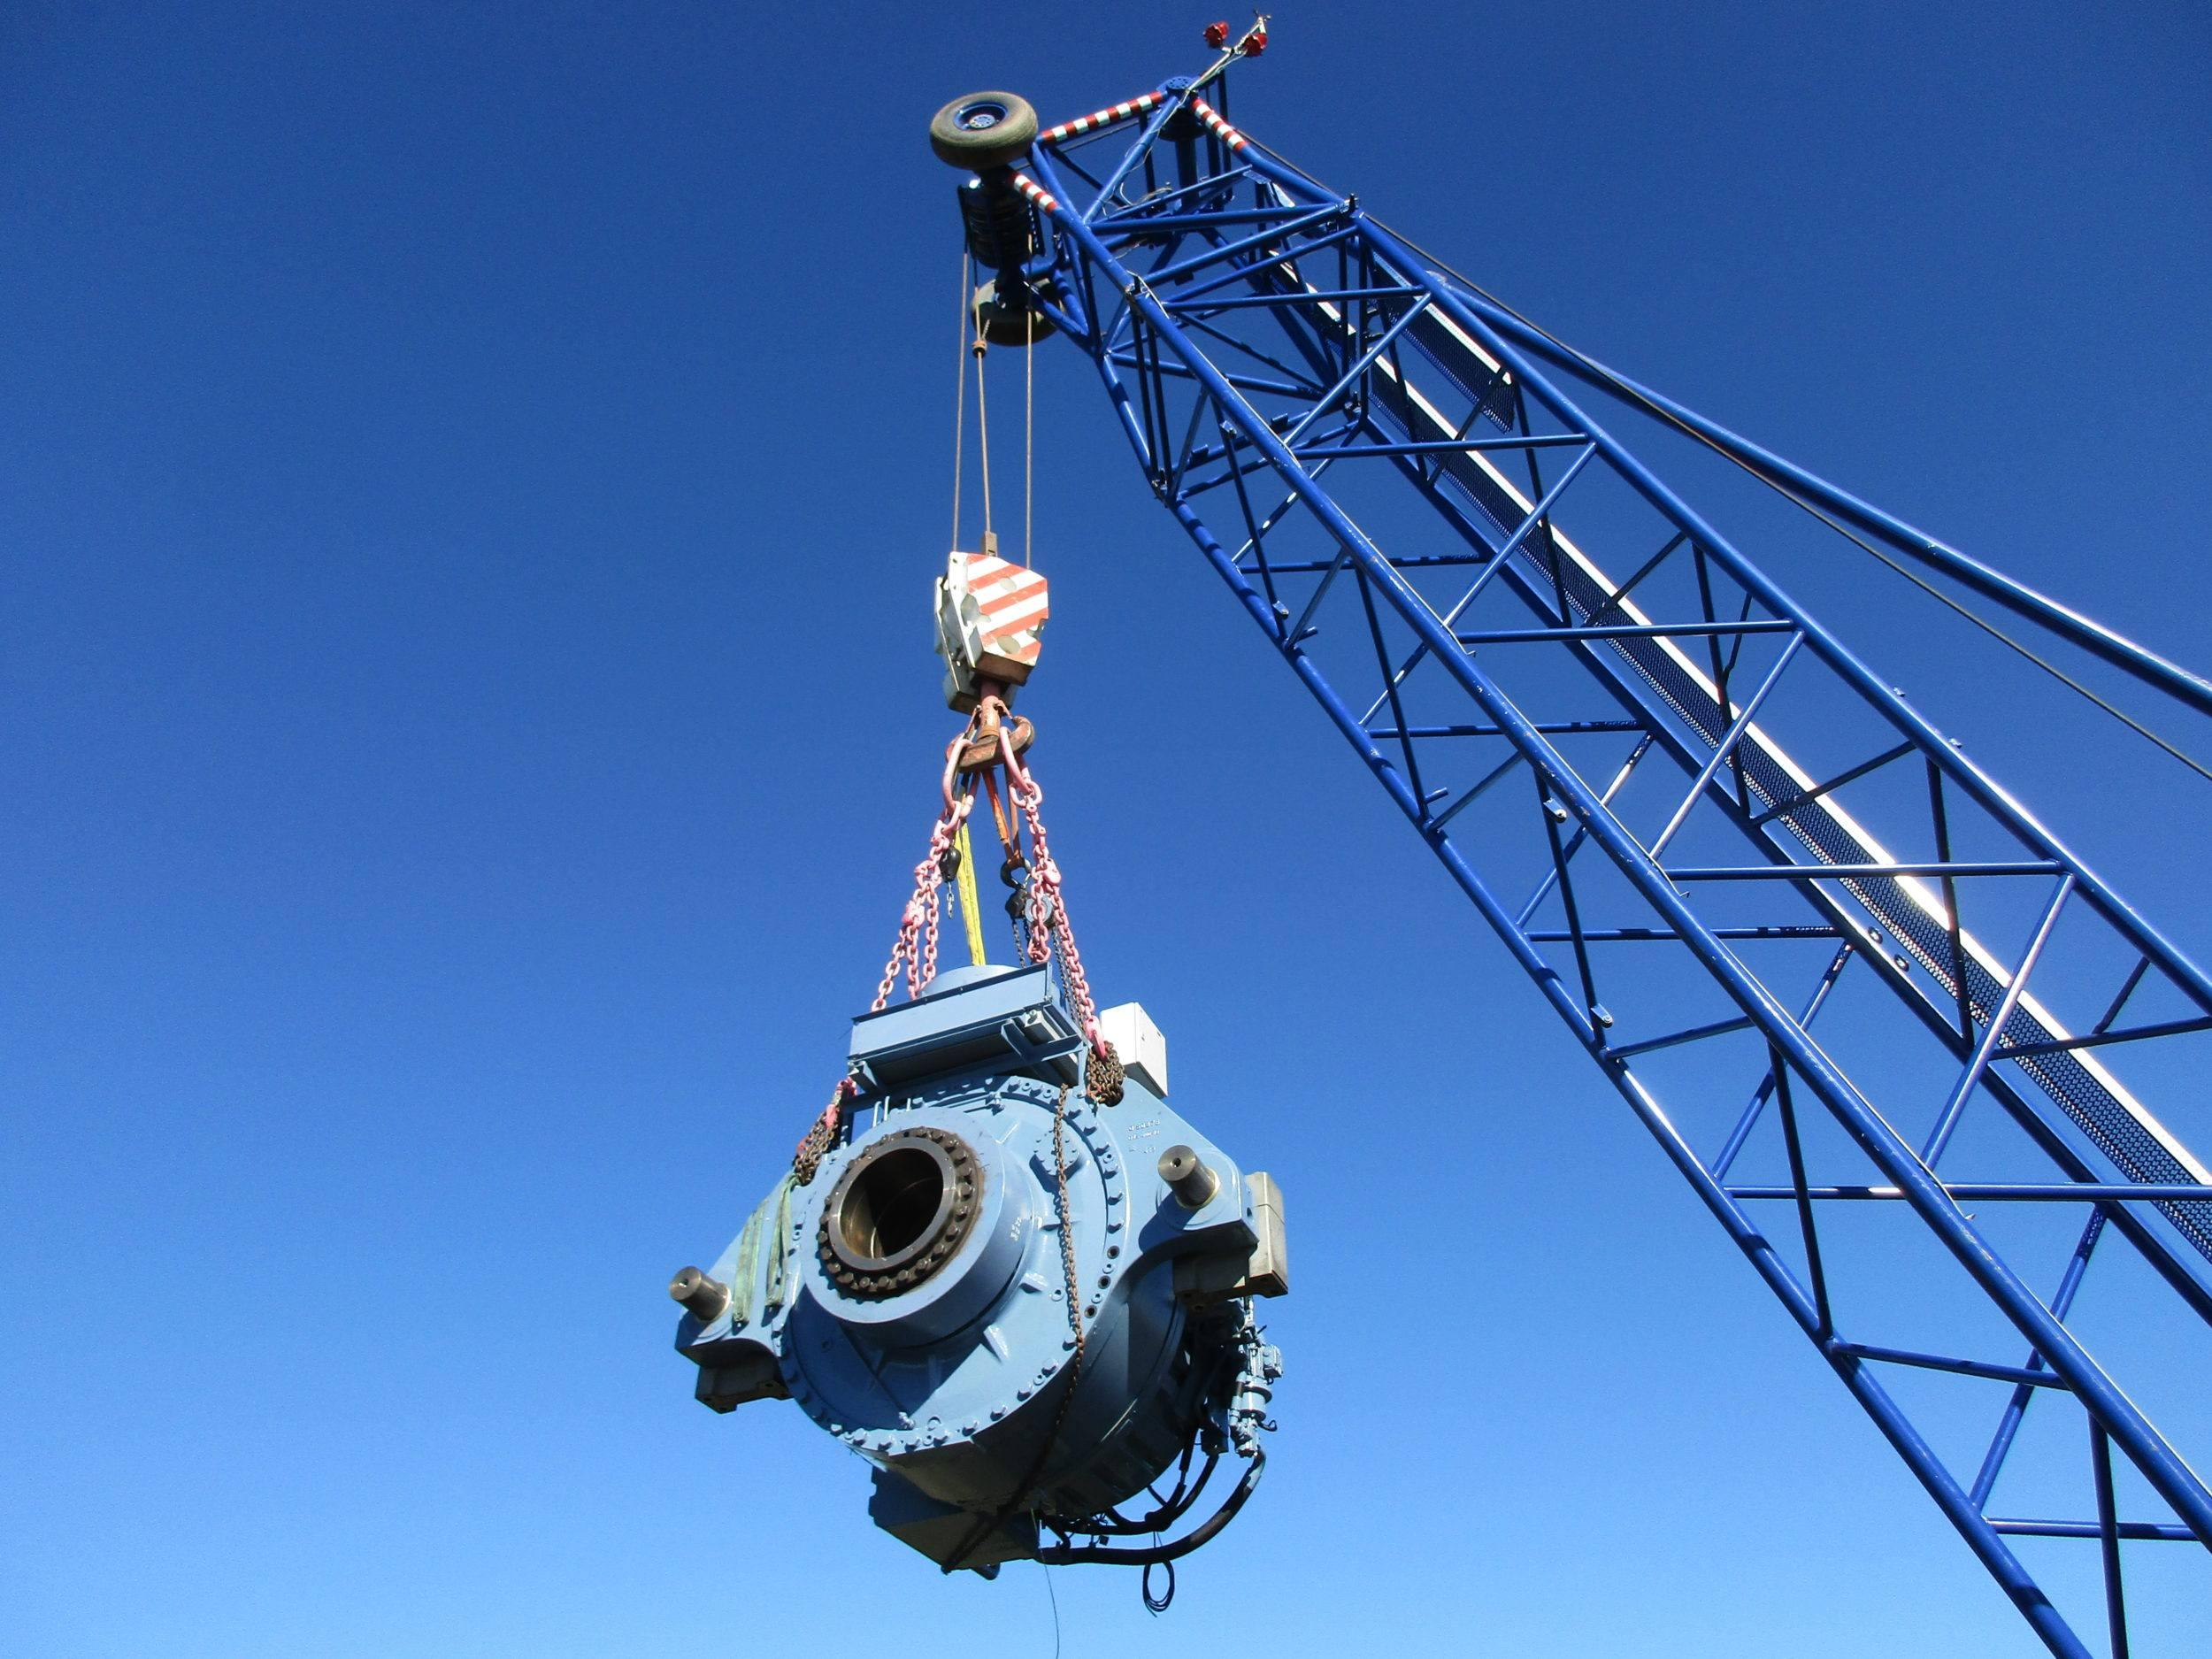 Moventas wind turbine gearbox up-tower